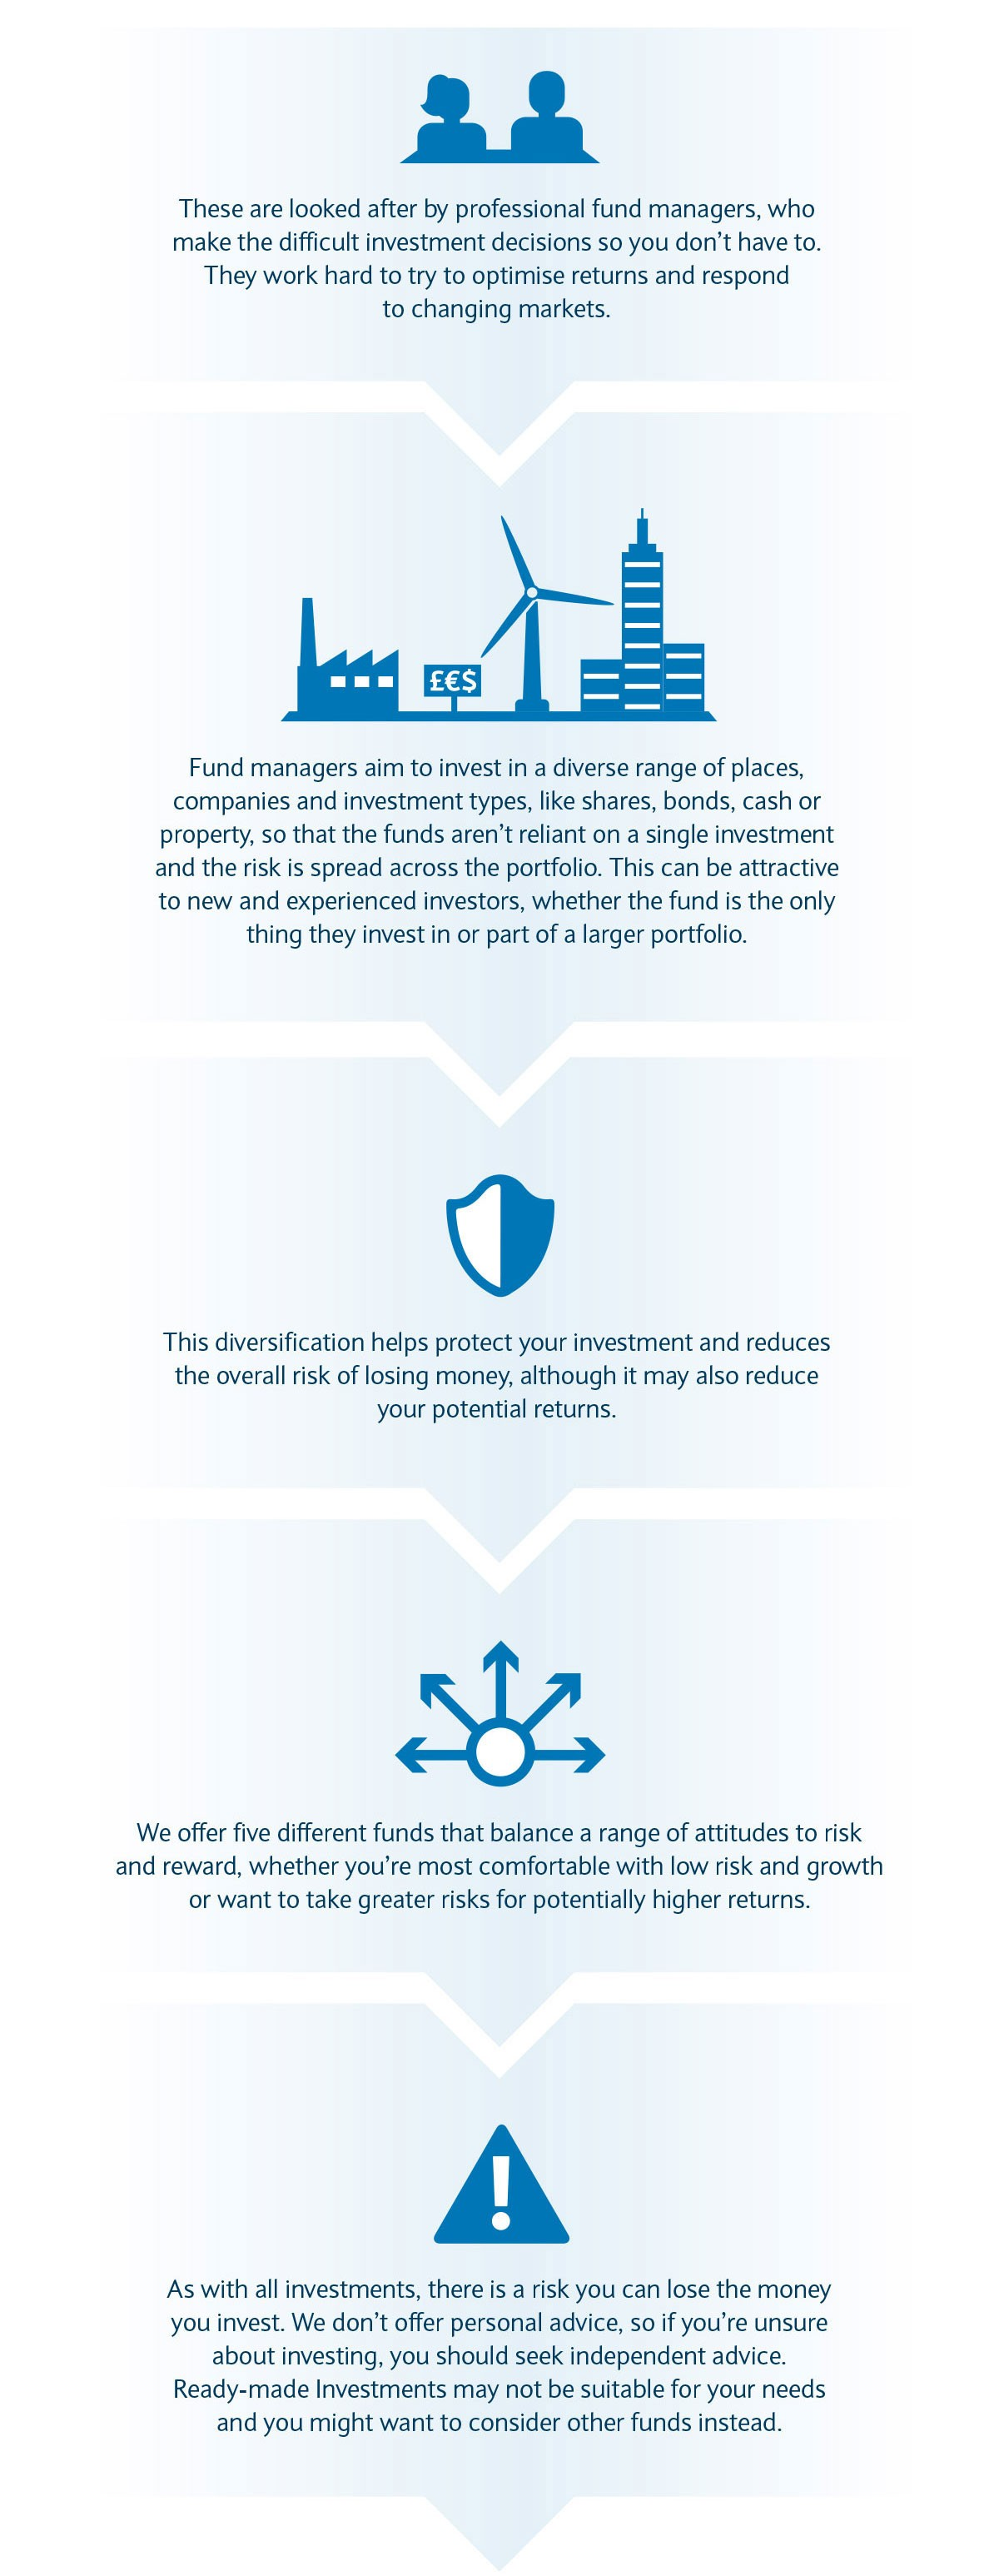 Ready-made Investments | Barclays Smart Investor